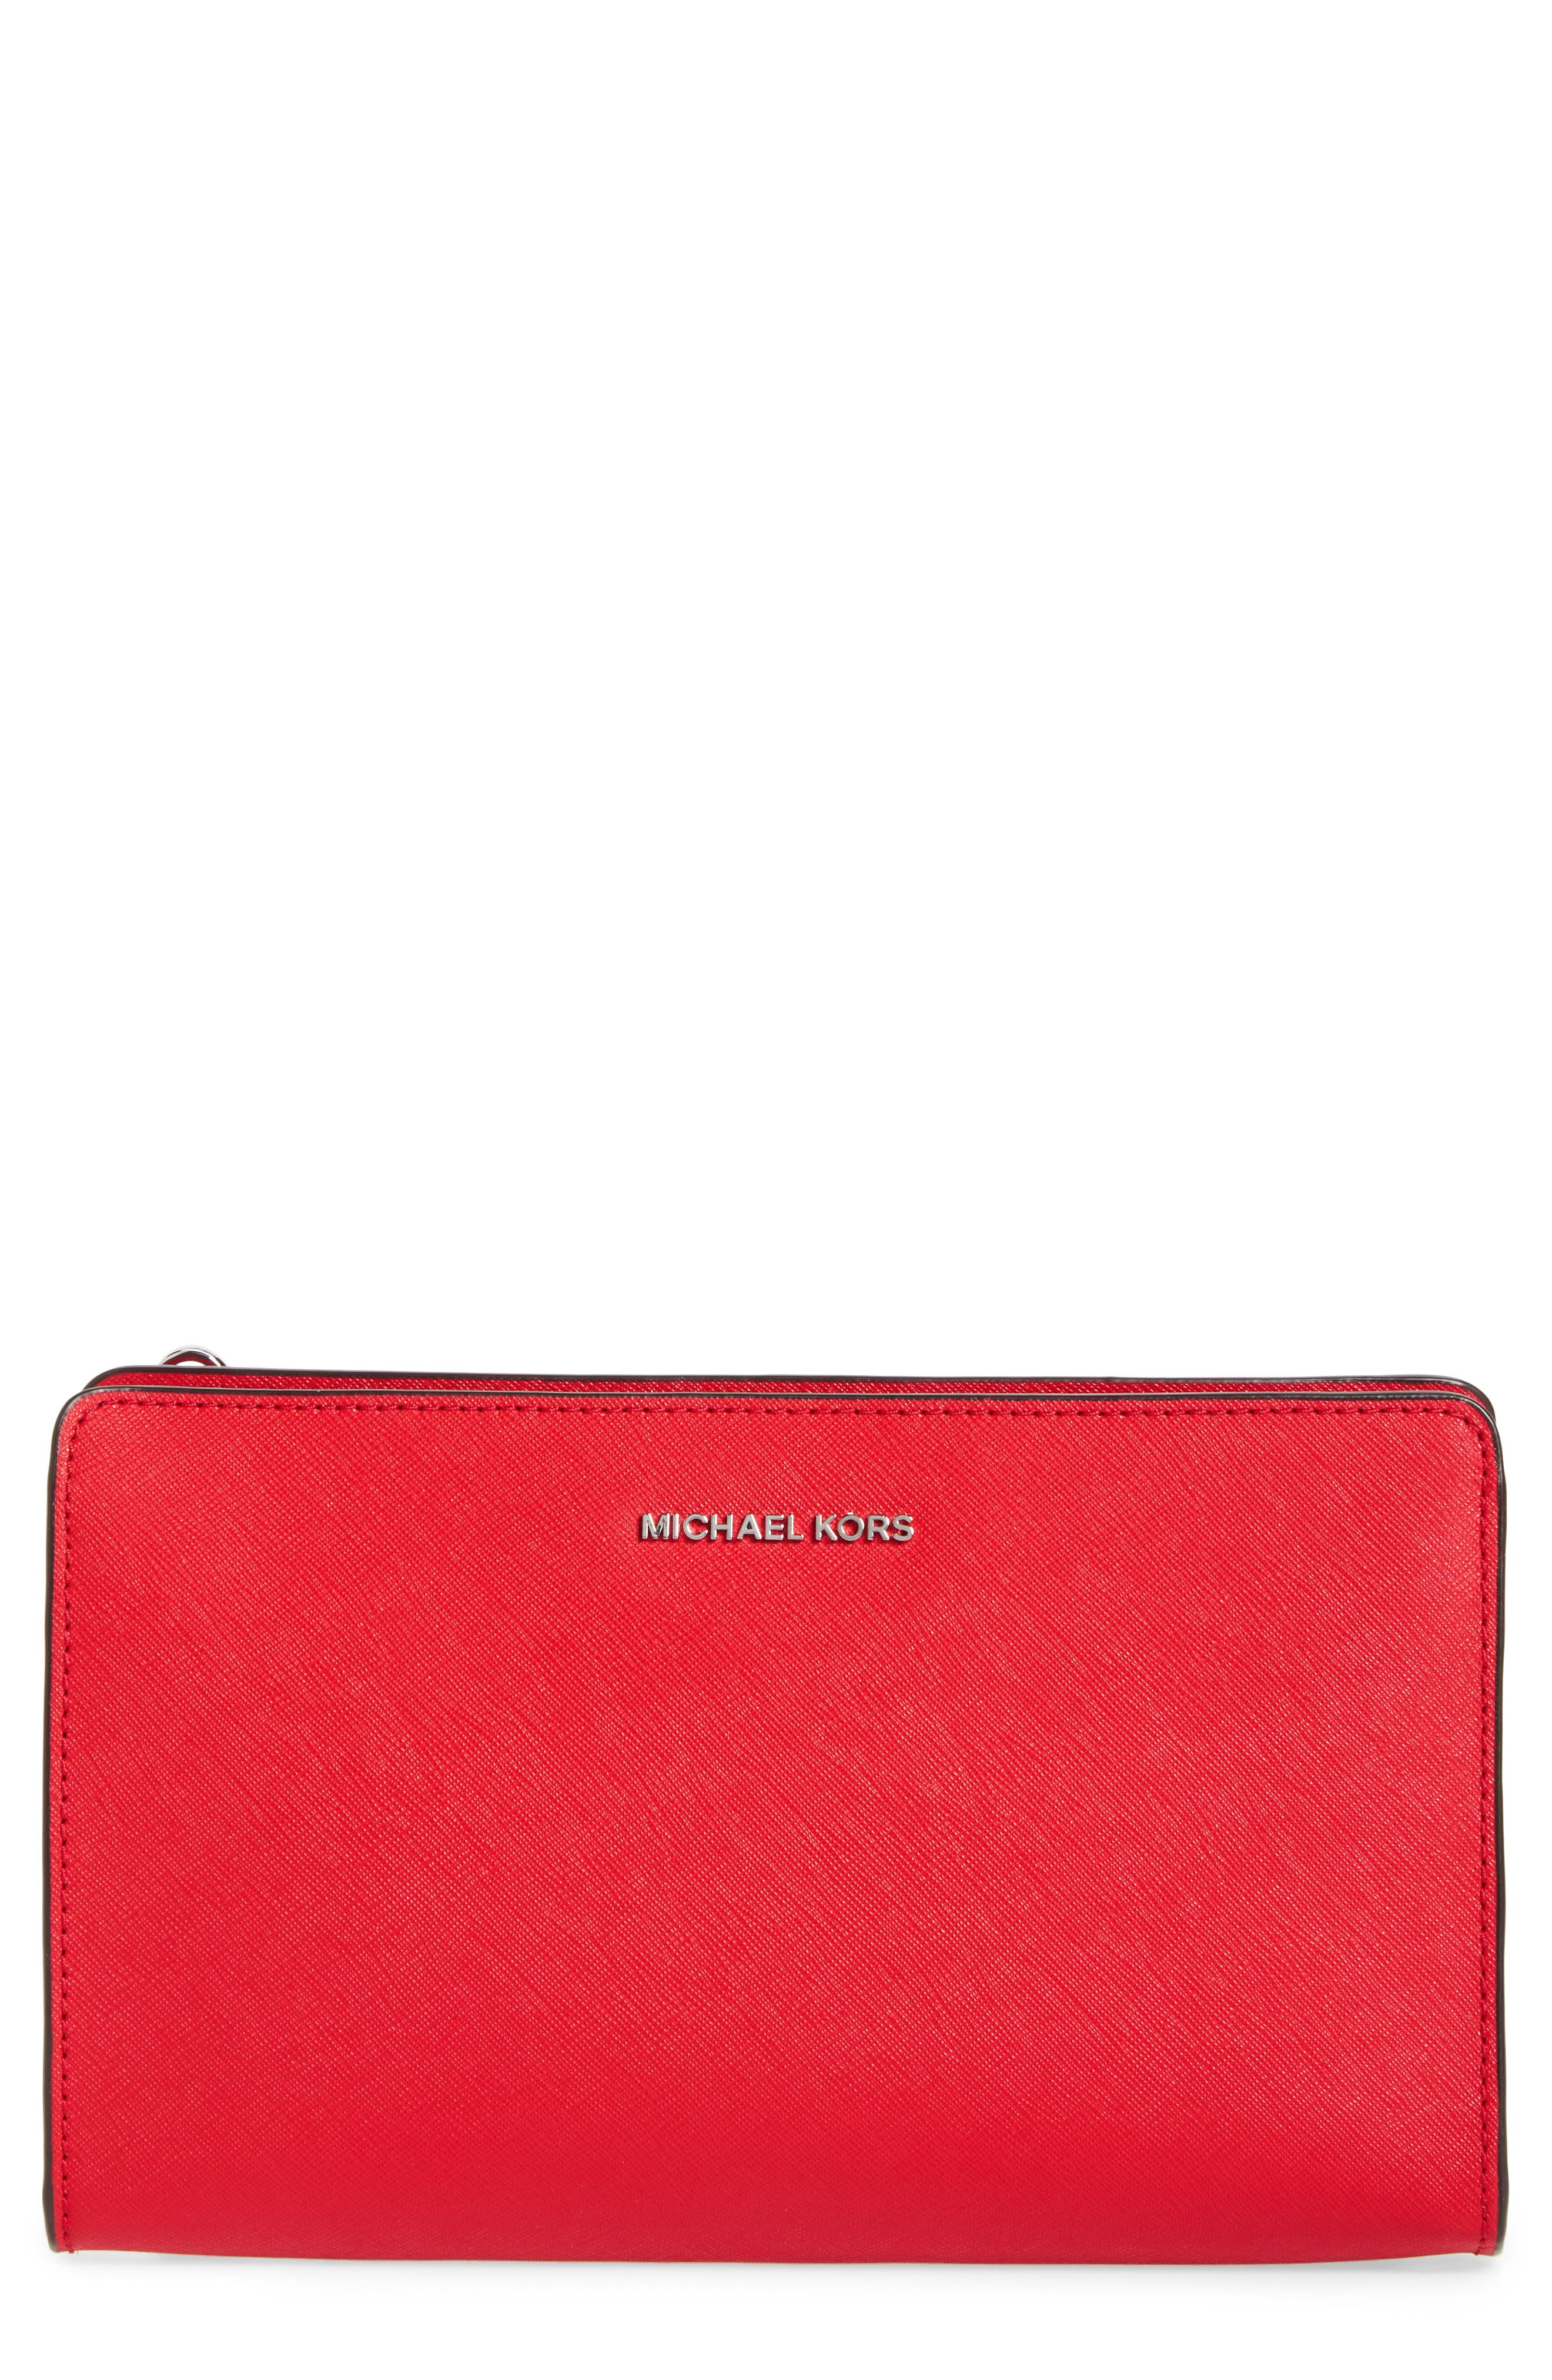 4cc82e37a70563 Buy michael kors red purse > OFF65% Discounted